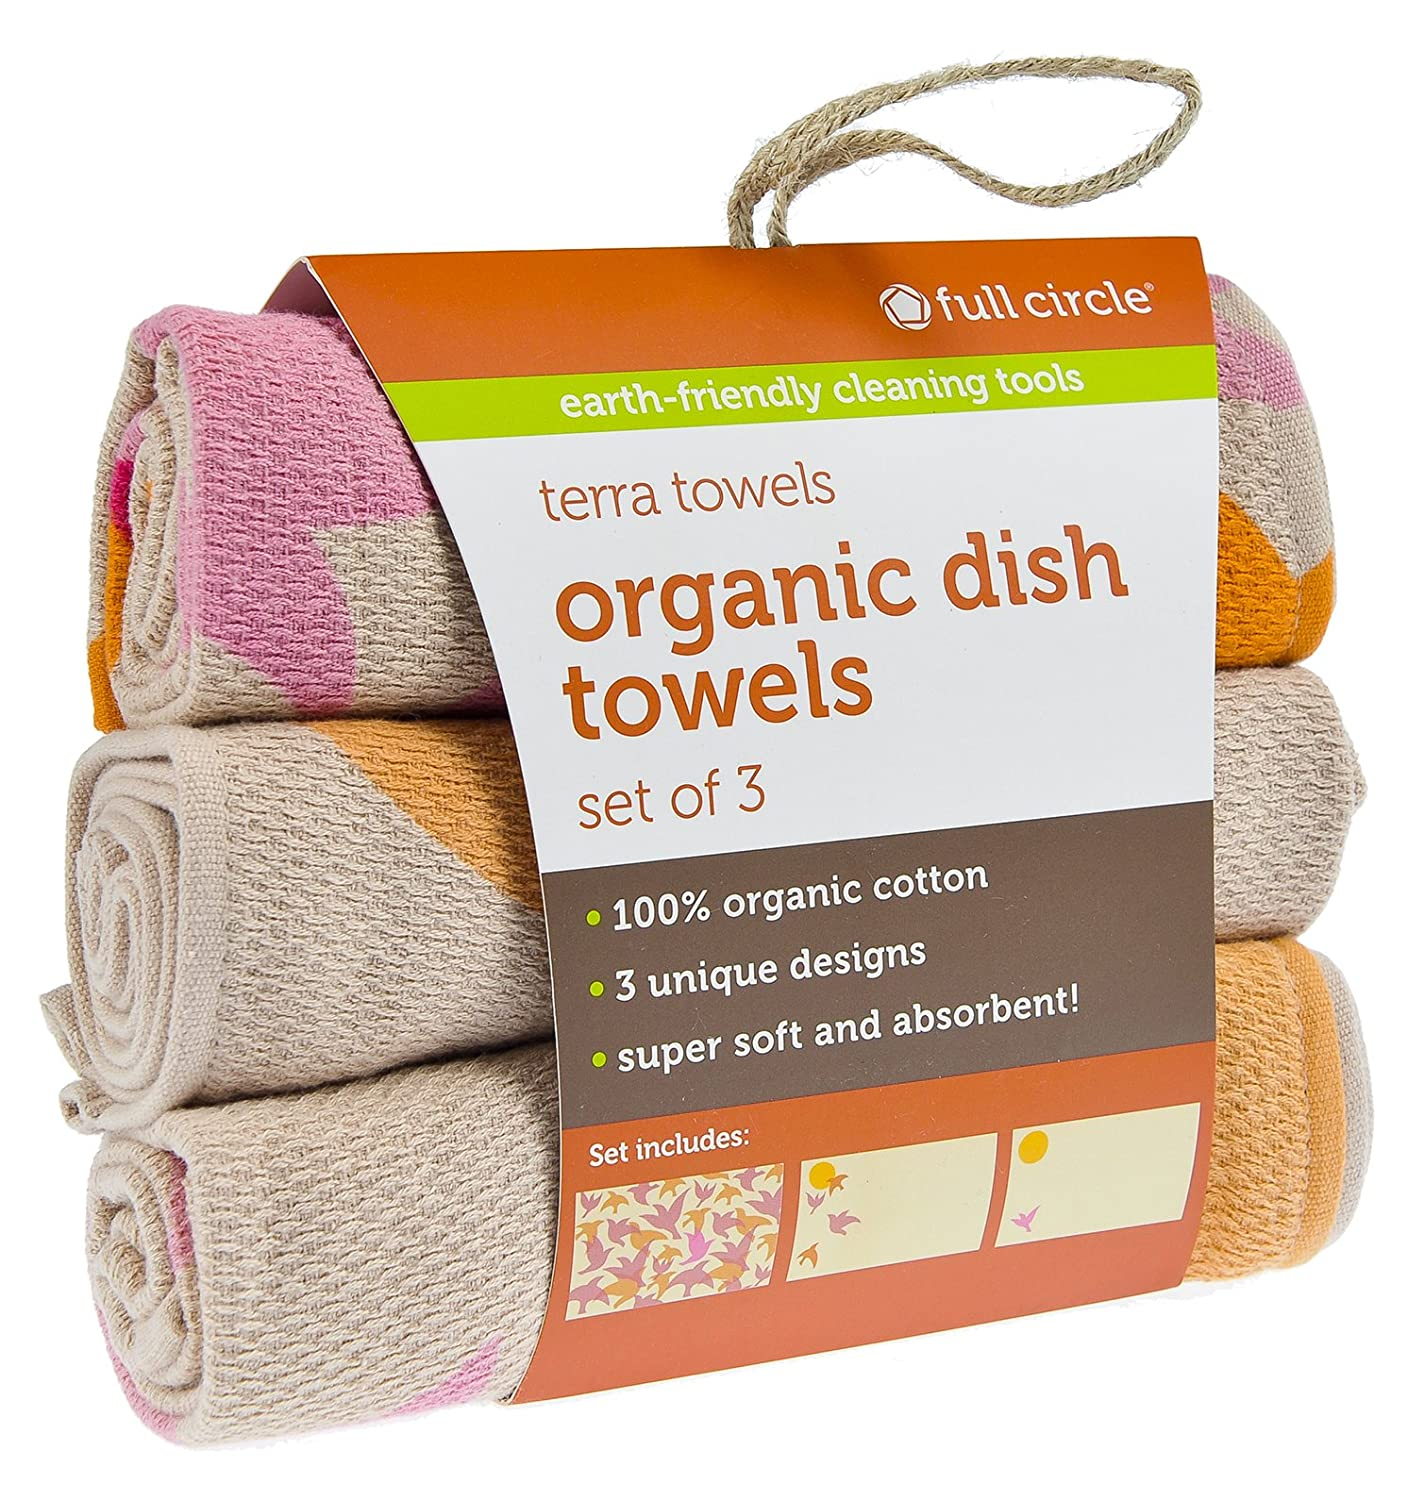 Amazon com: Full Circle Terra Towels Organic Cotton Dish